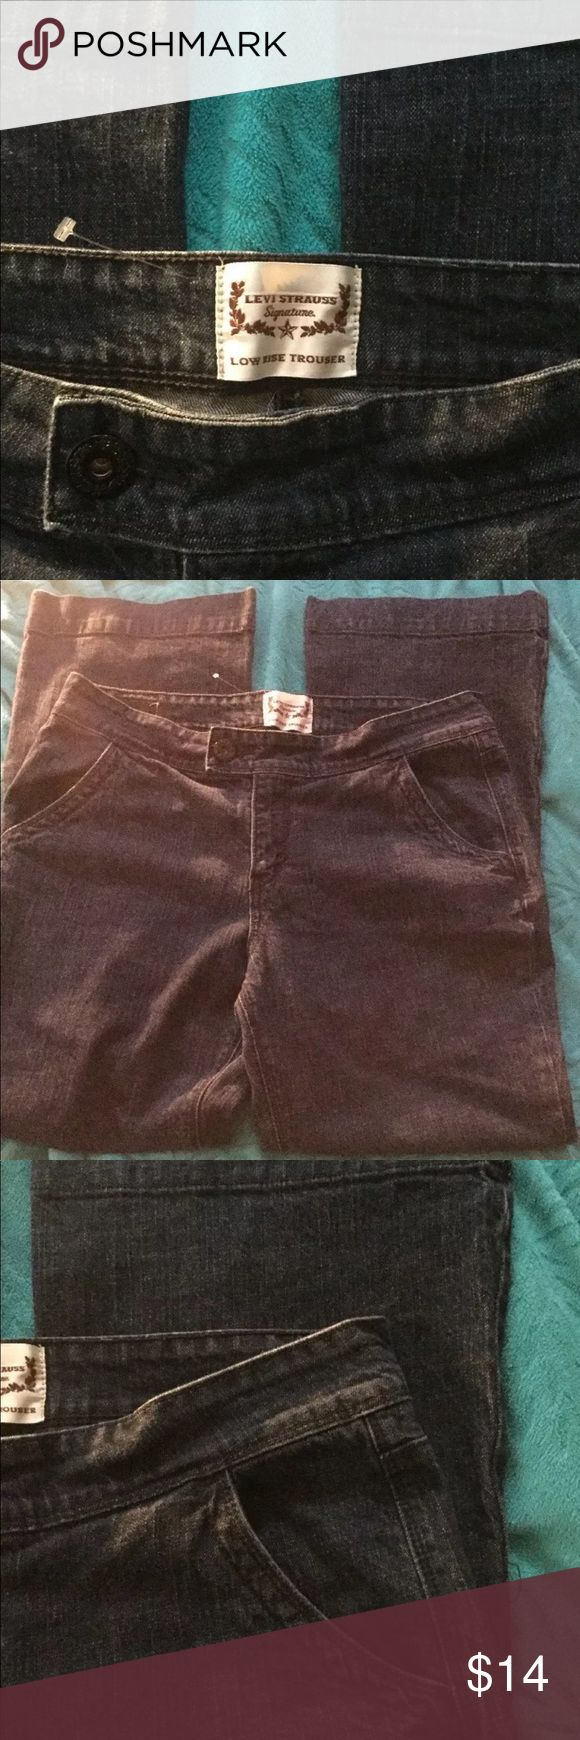 Low Rise Trouser Leg Stretch Jeans 36W 31L Levi's Ladies Size 14 Low Rise Trouser Leg Stretch Jeans 36W 31L Levi's Jeans Flare & Wide Leg